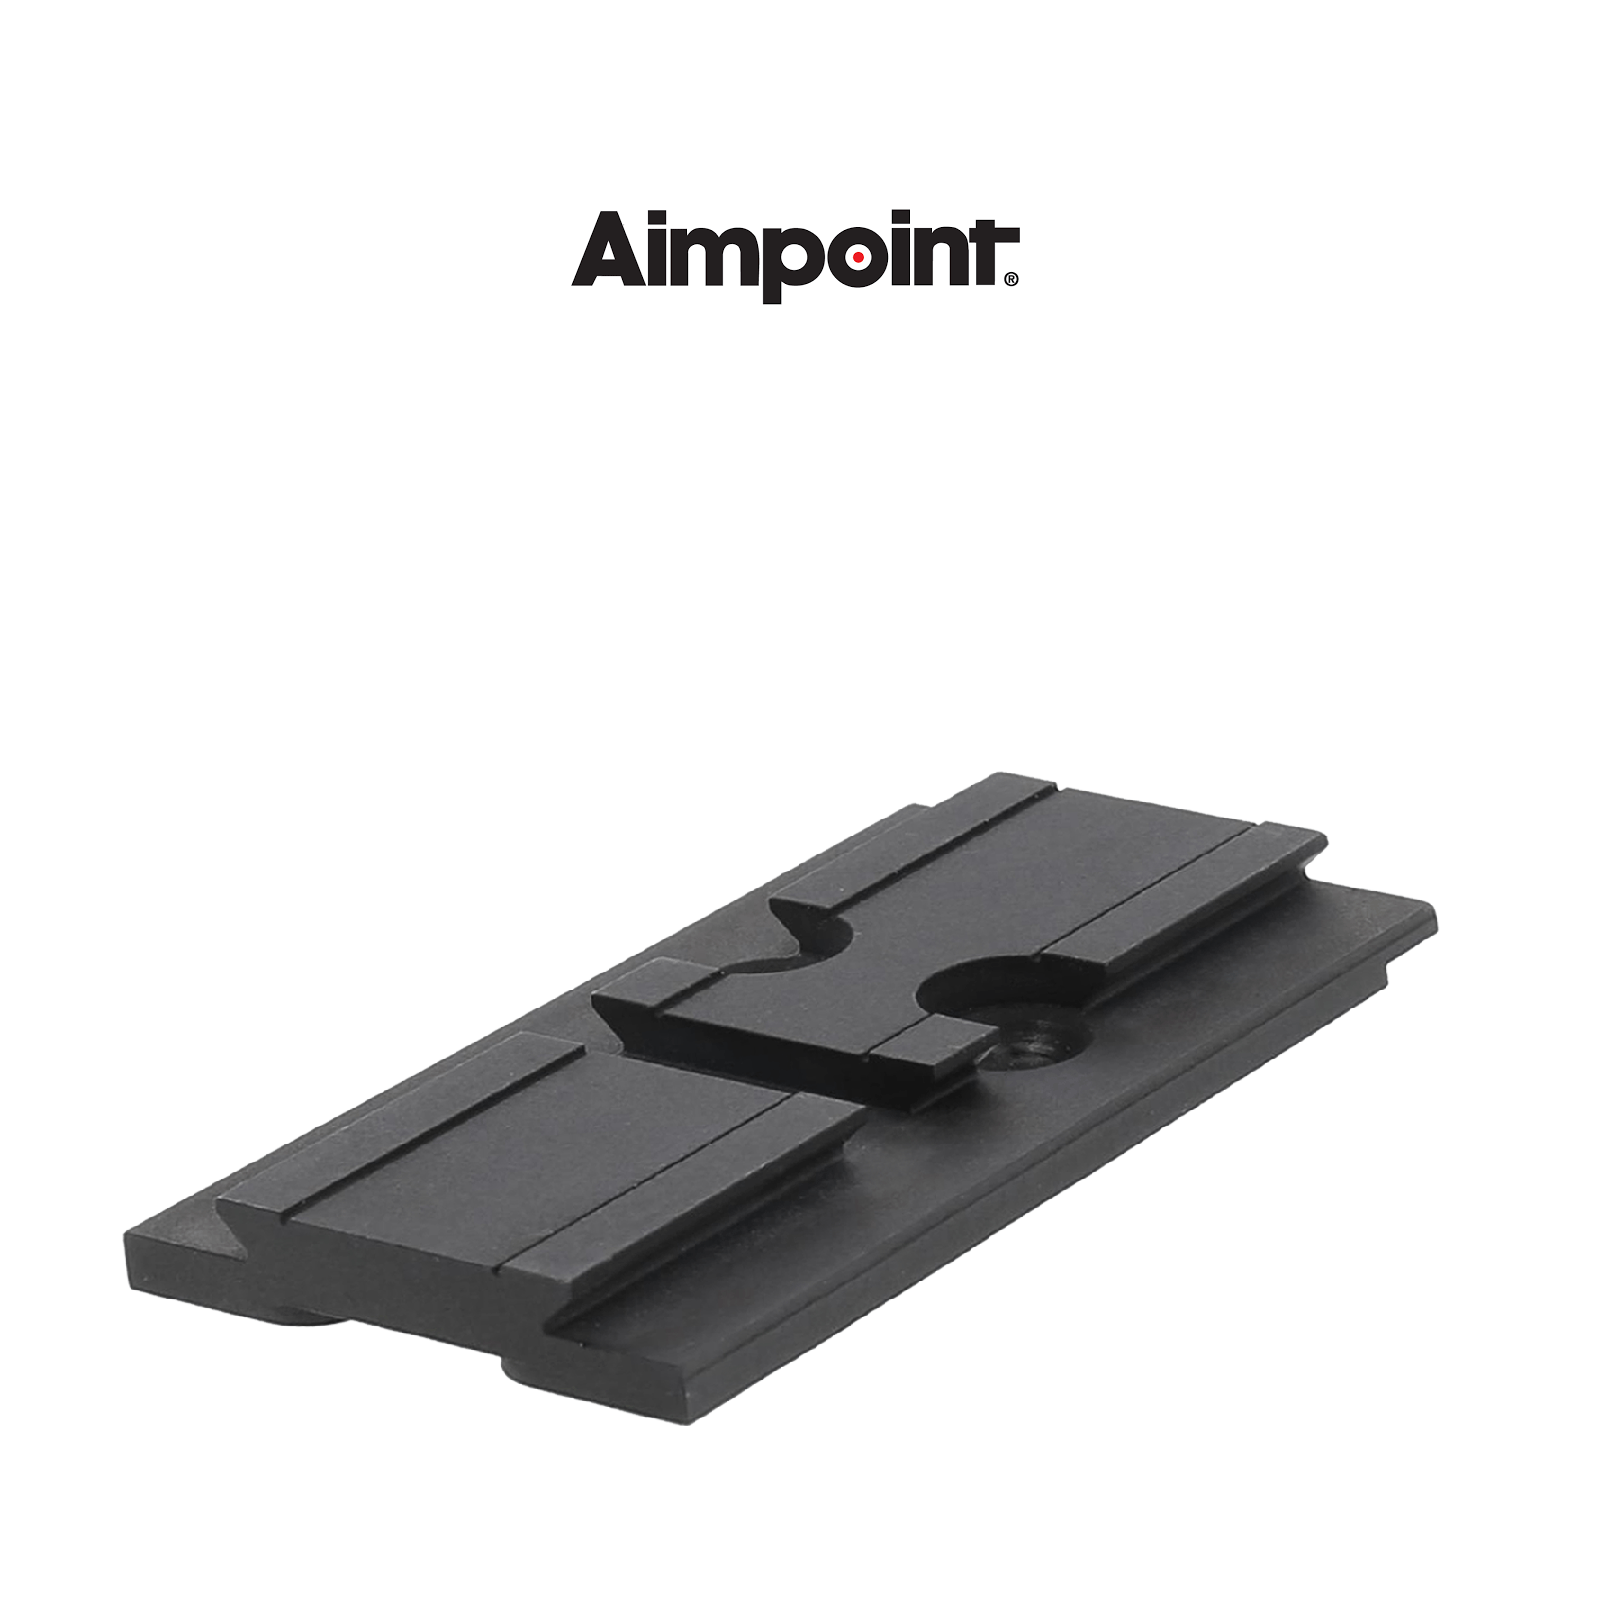 Aimpoint ACRO Adapter Plate